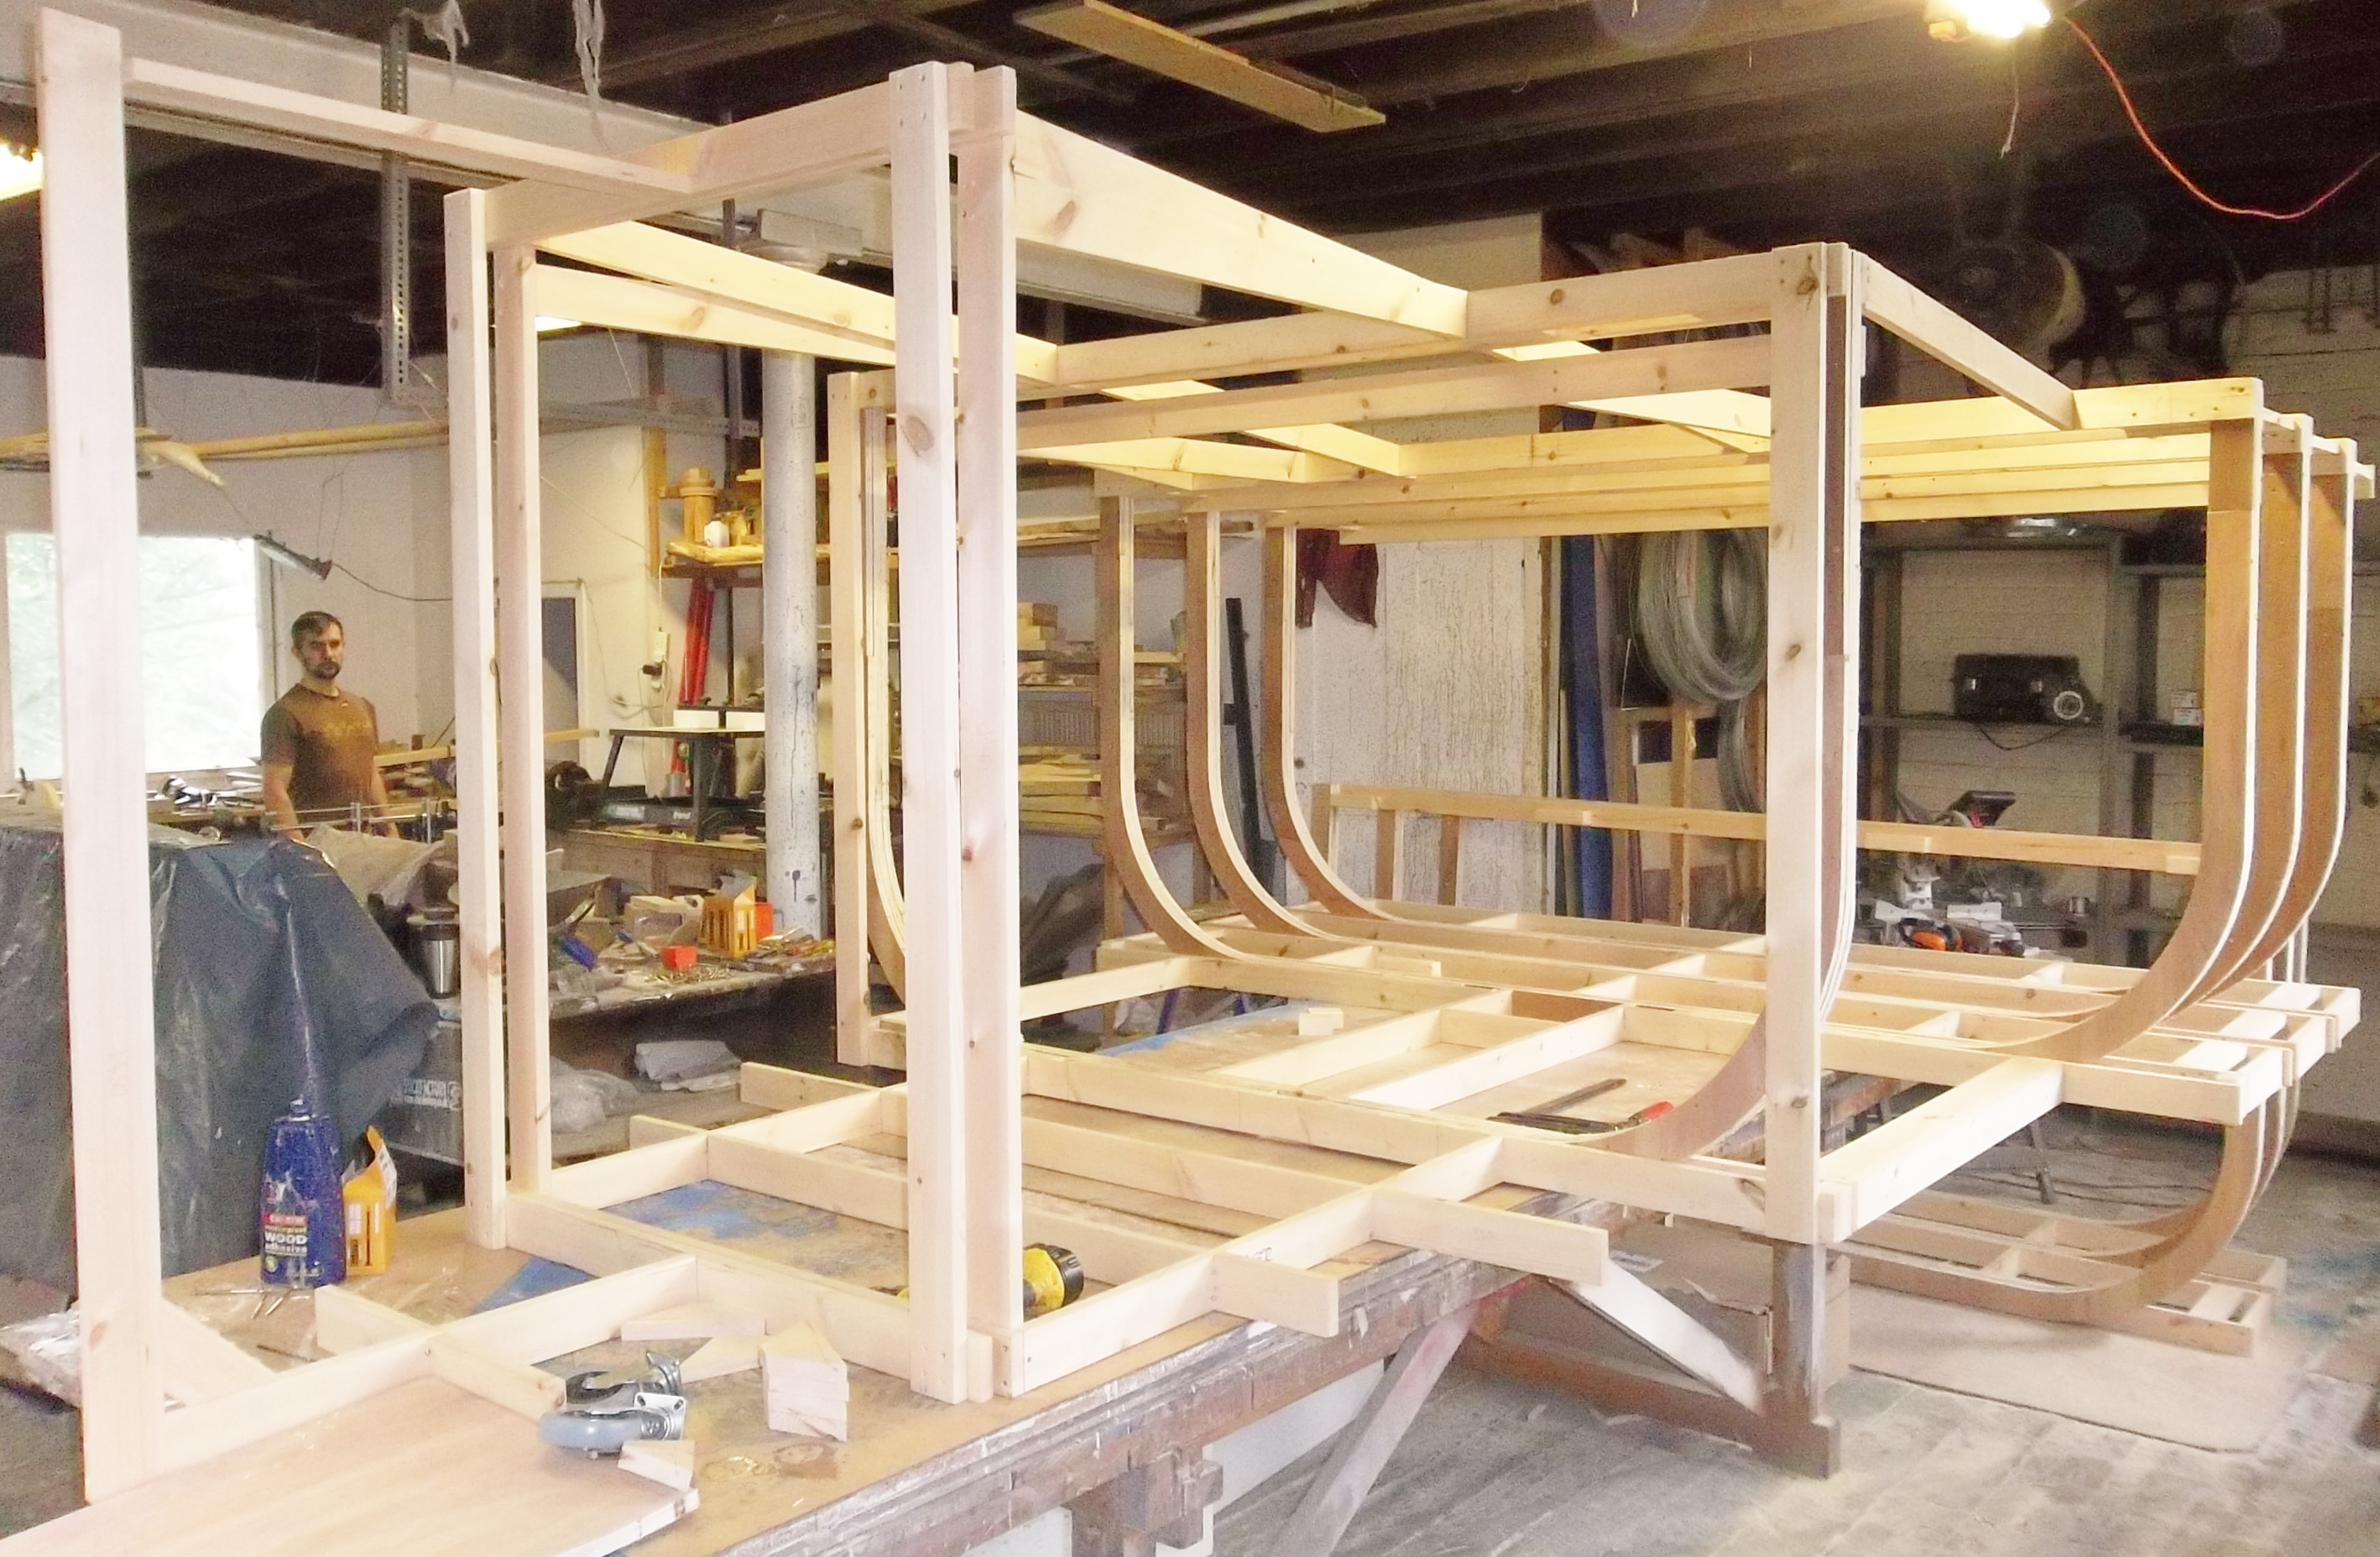 Stage Boat, timber frame construction